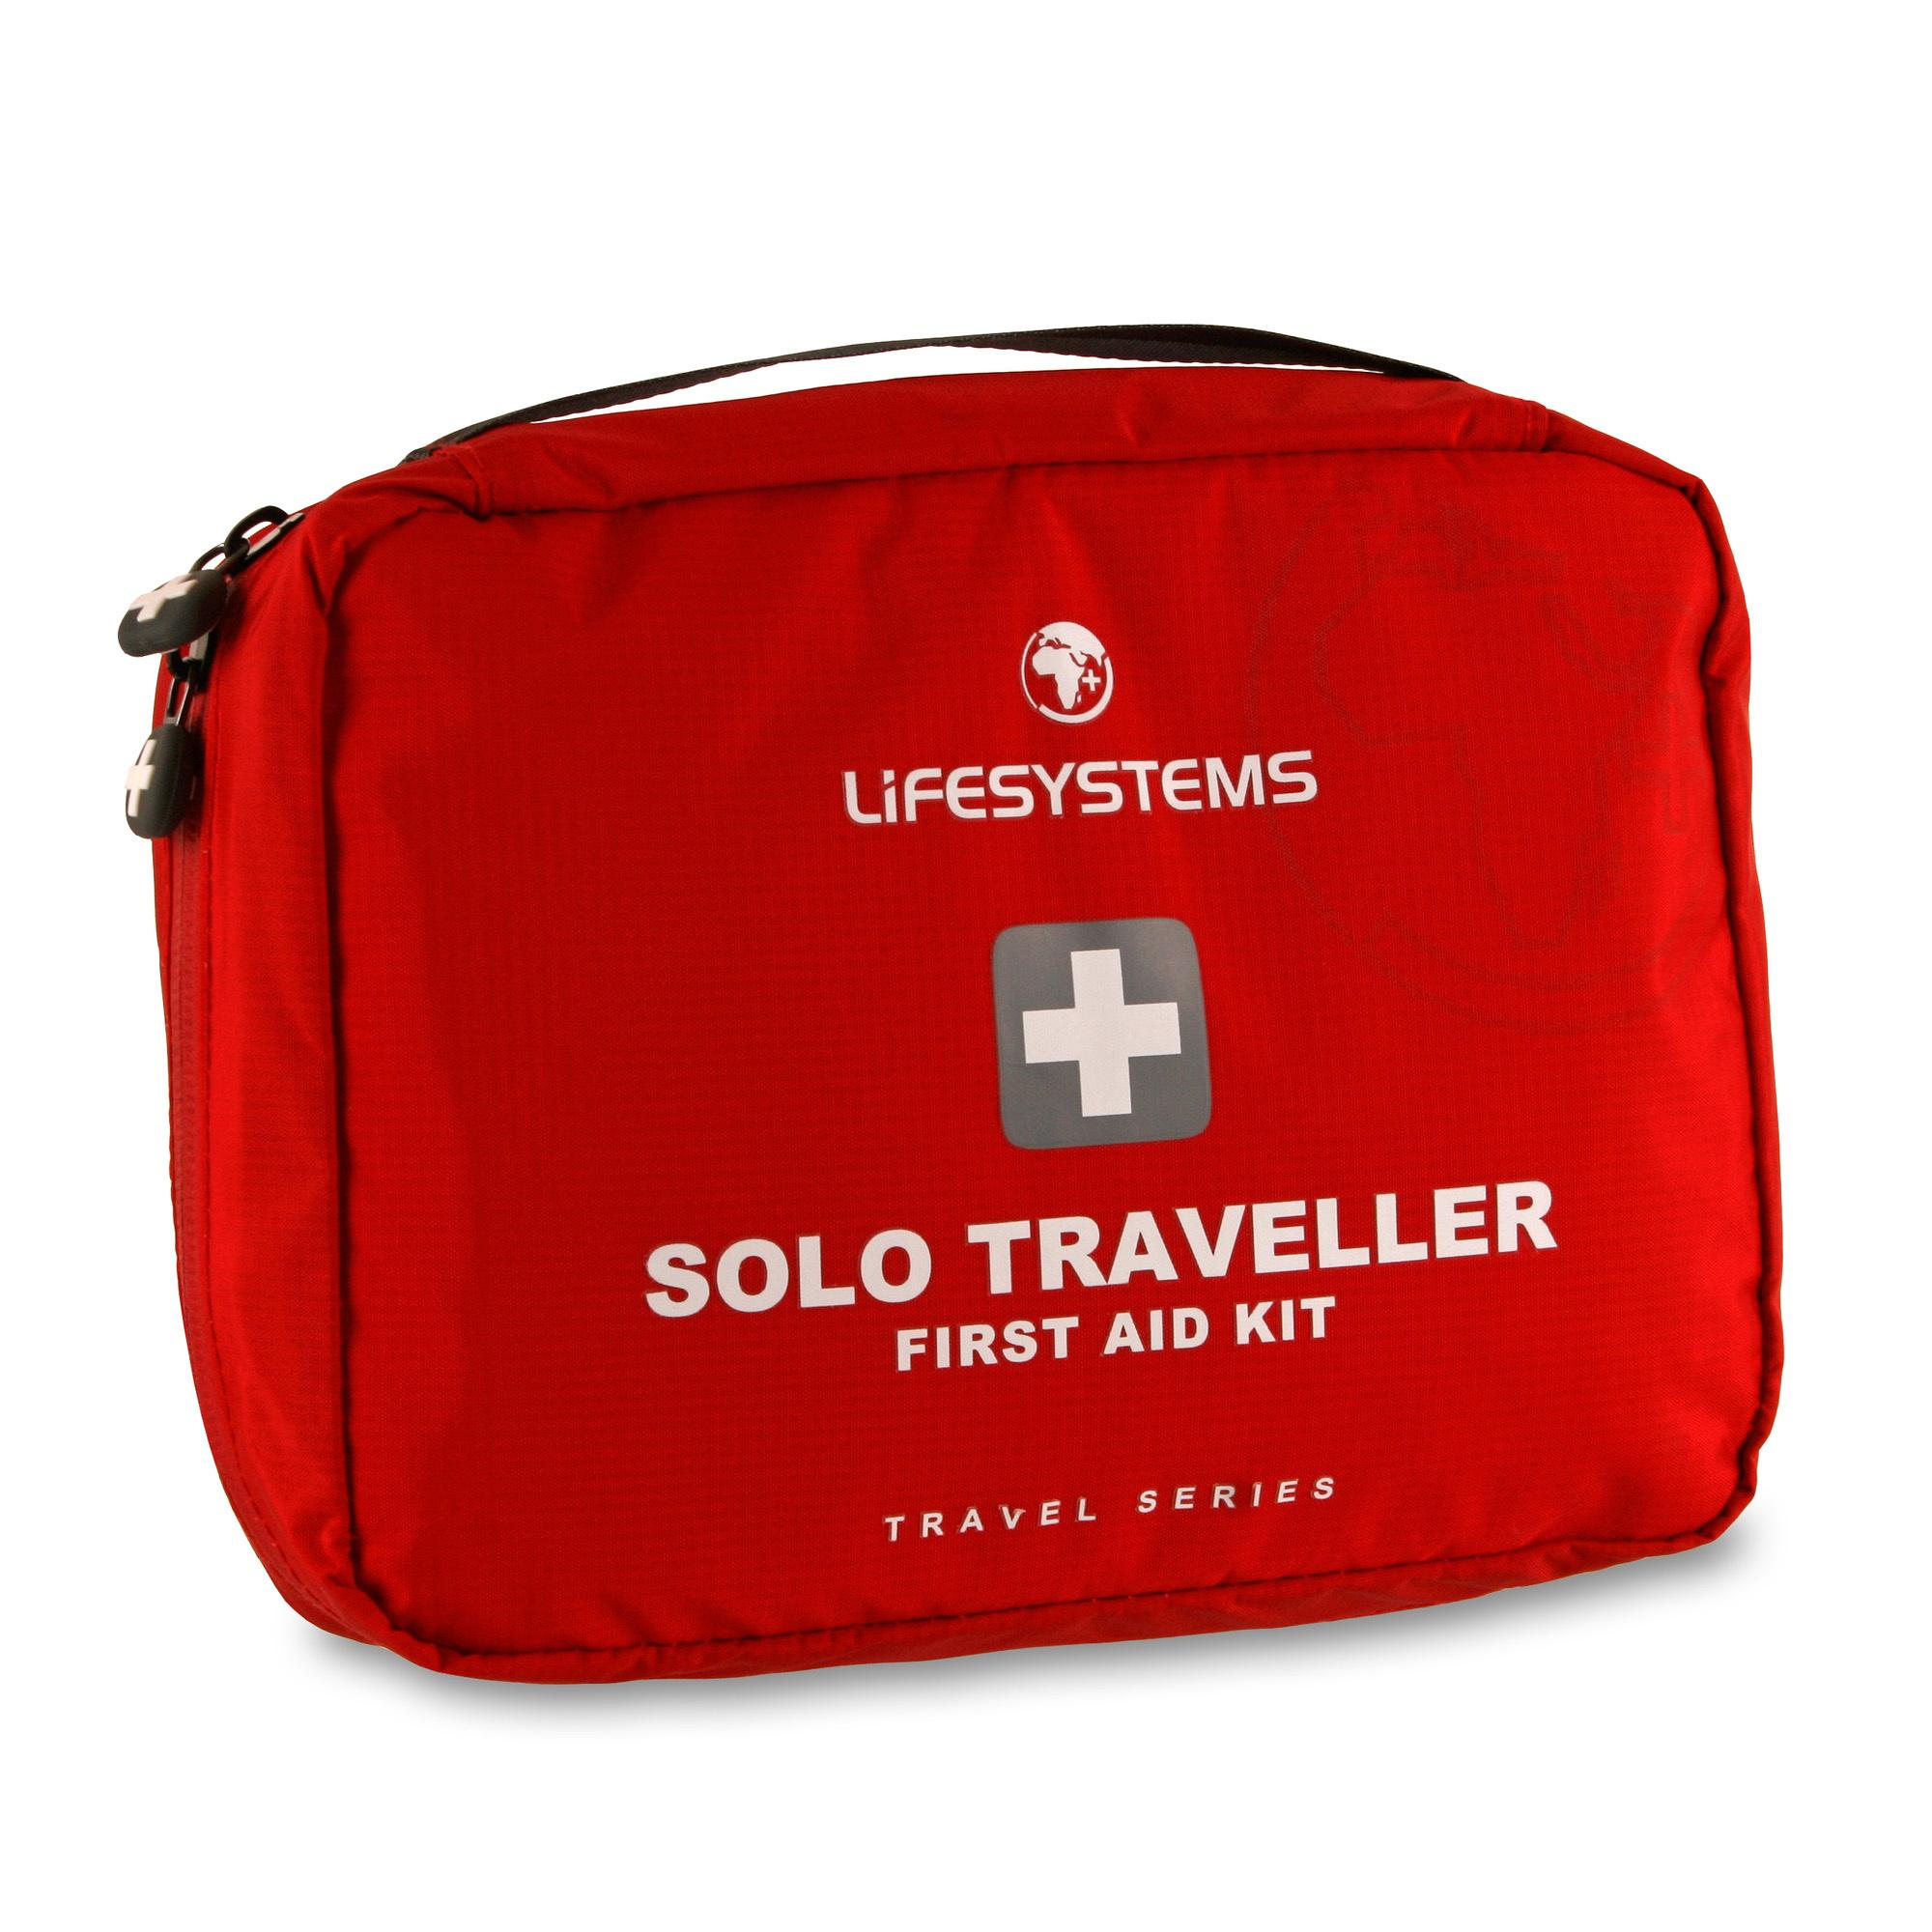 Lifesystems Solo Traveller First Aid Kit Red